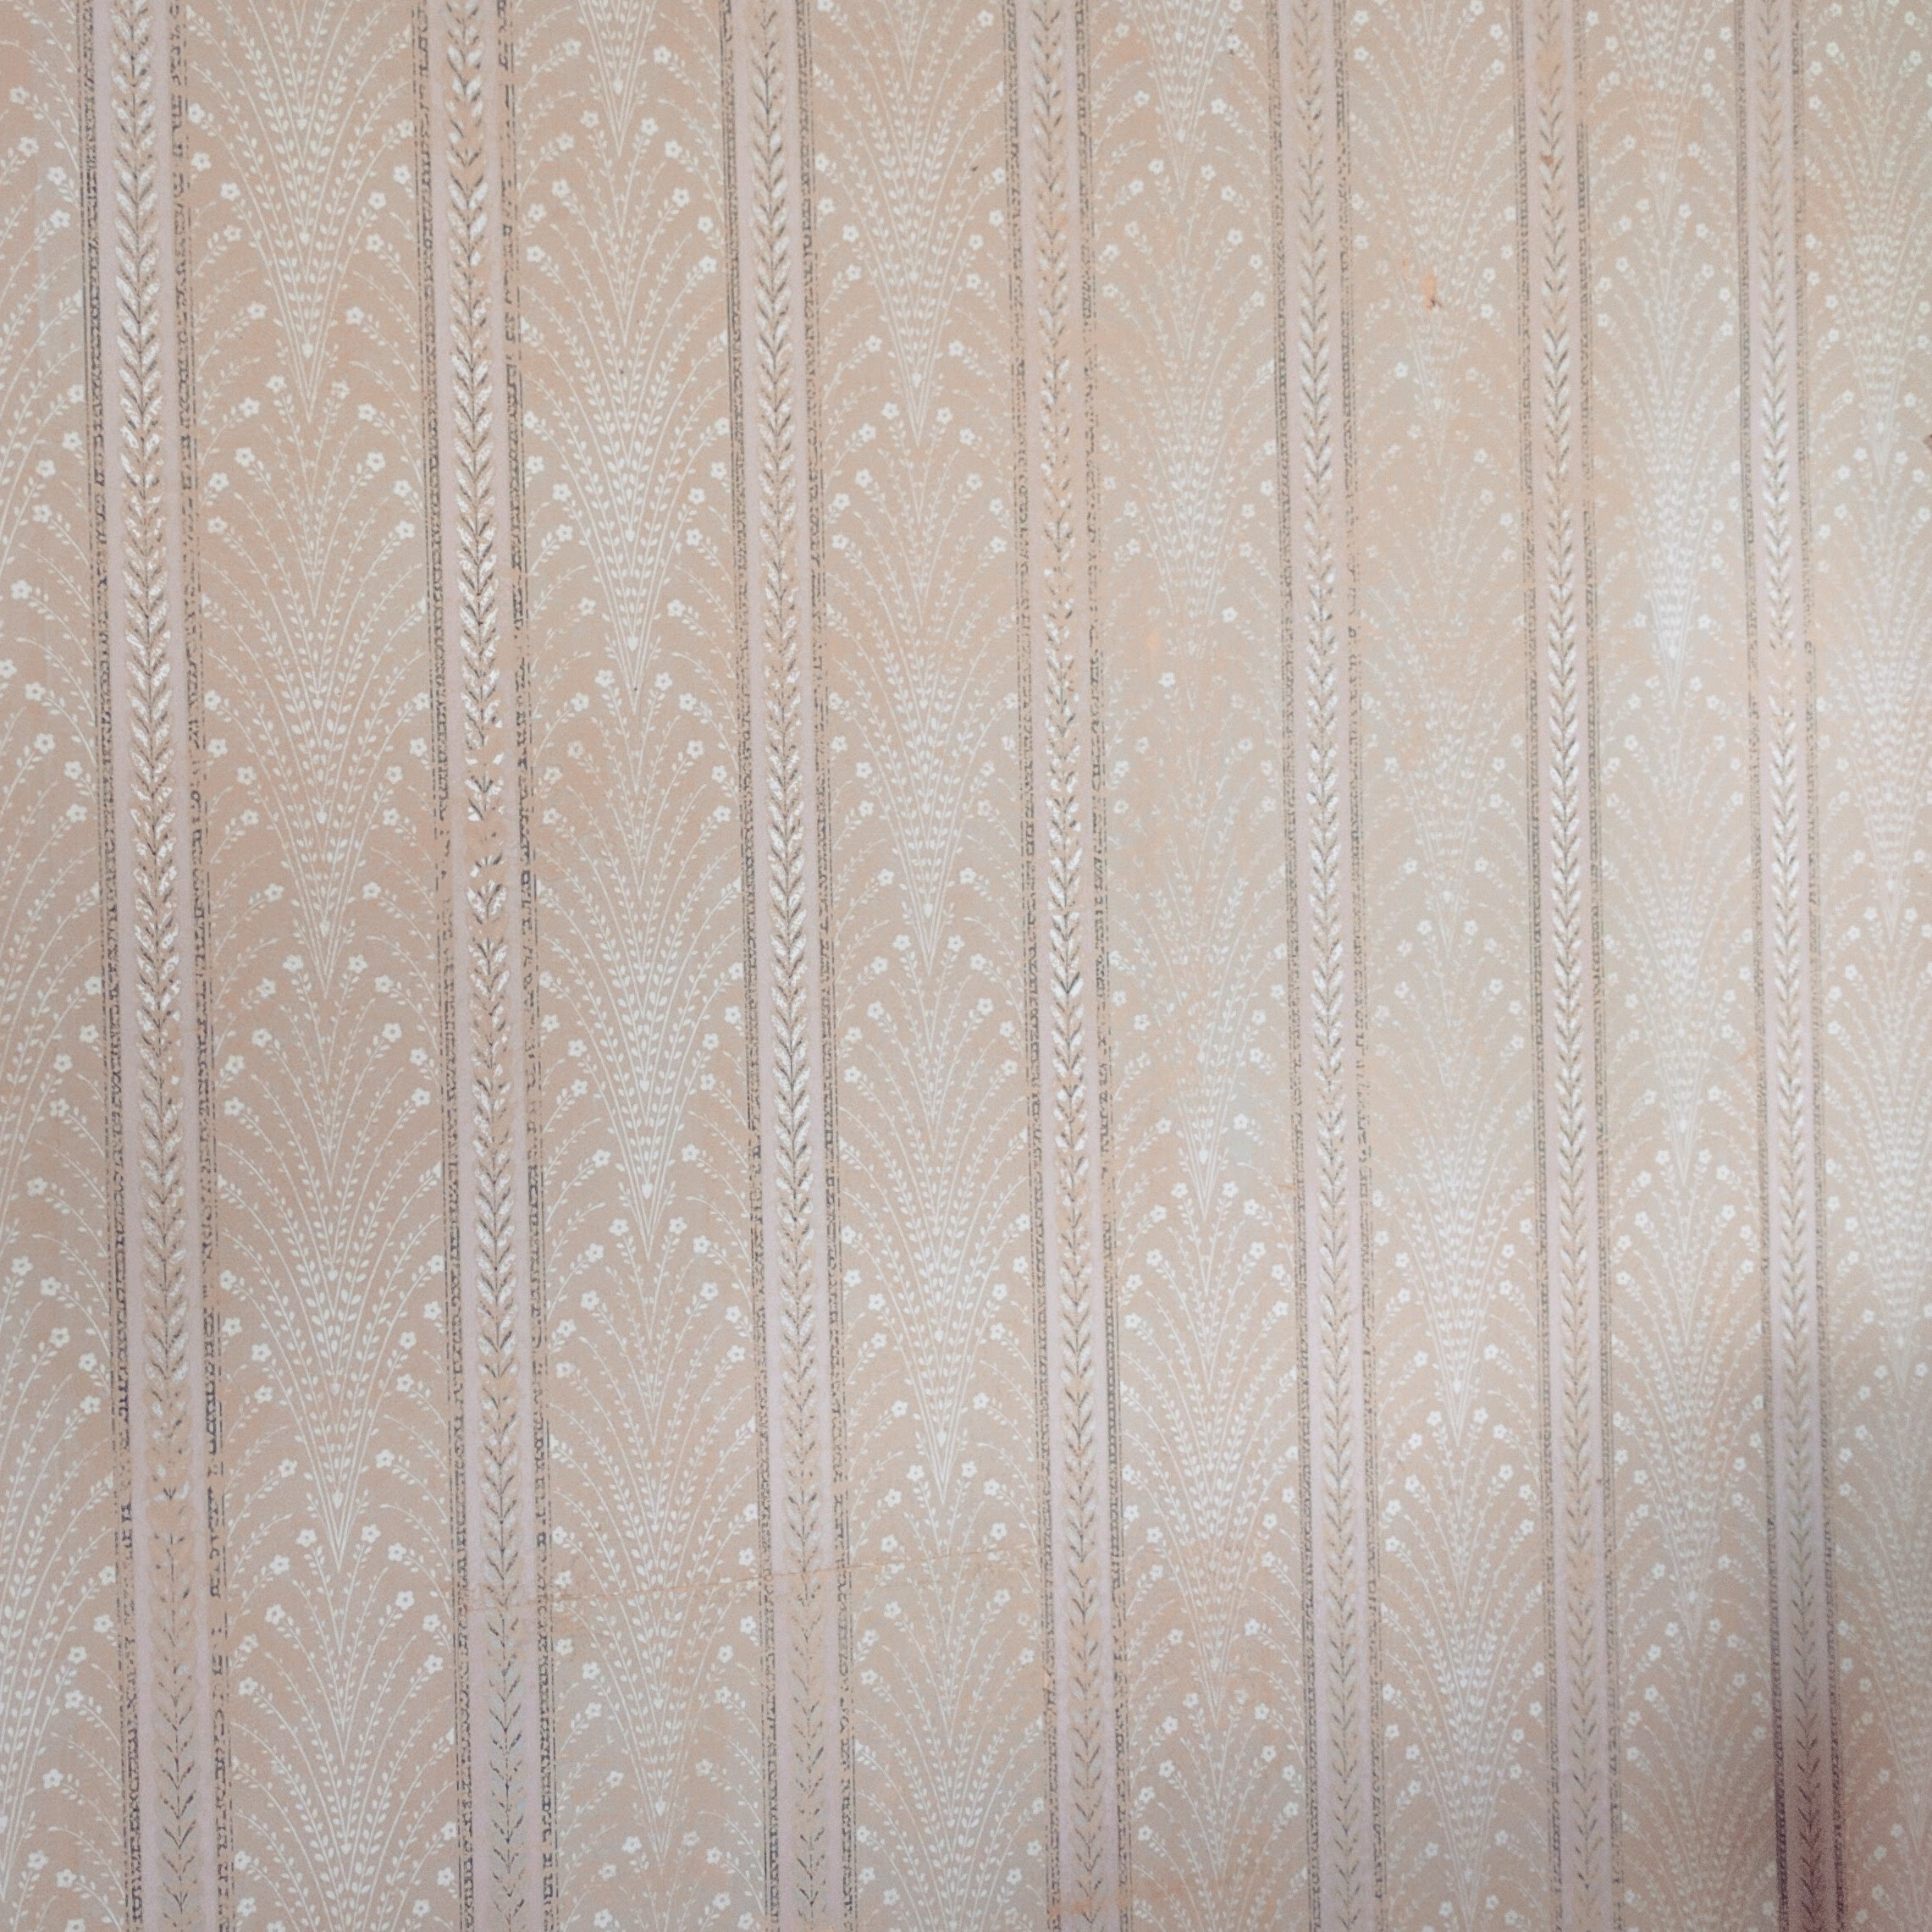 100 year old wallpaper